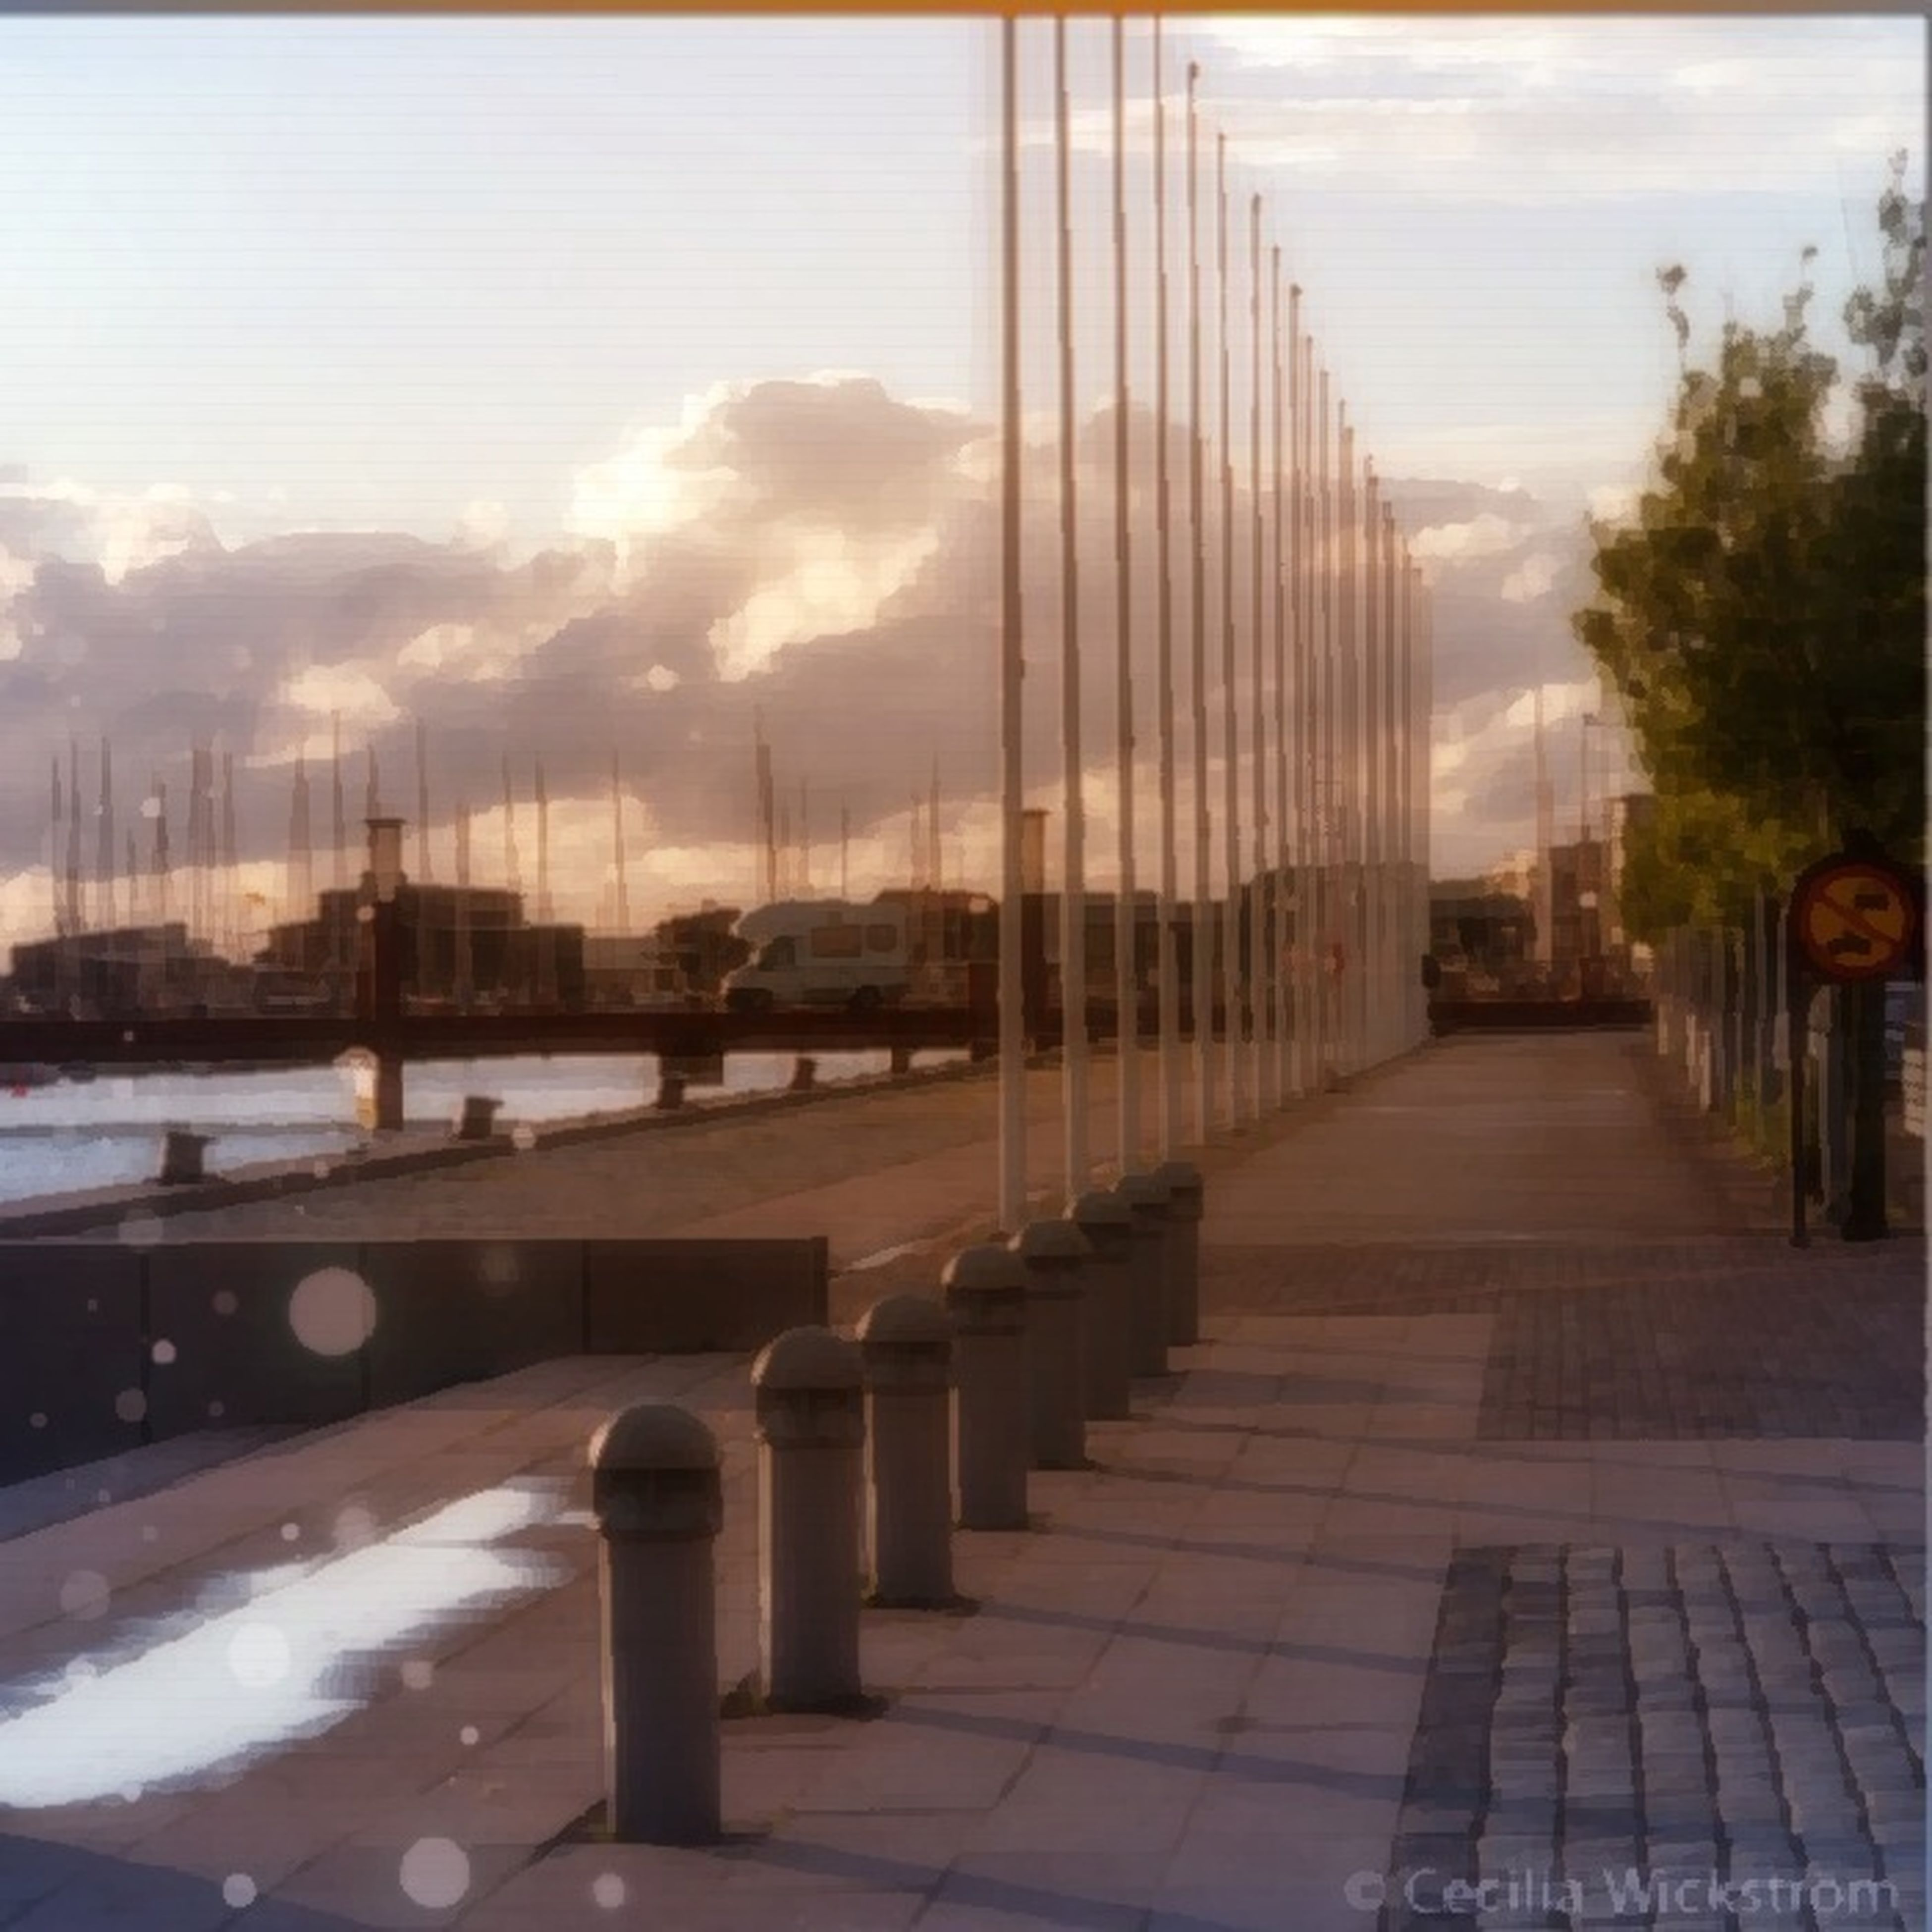 architecture, sky, built structure, cloud - sky, the way forward, city, building exterior, connection, cloudy, bridge - man made structure, transportation, cloud, railing, diminishing perspective, reflection, sunlight, road, incidental people, street light, empty